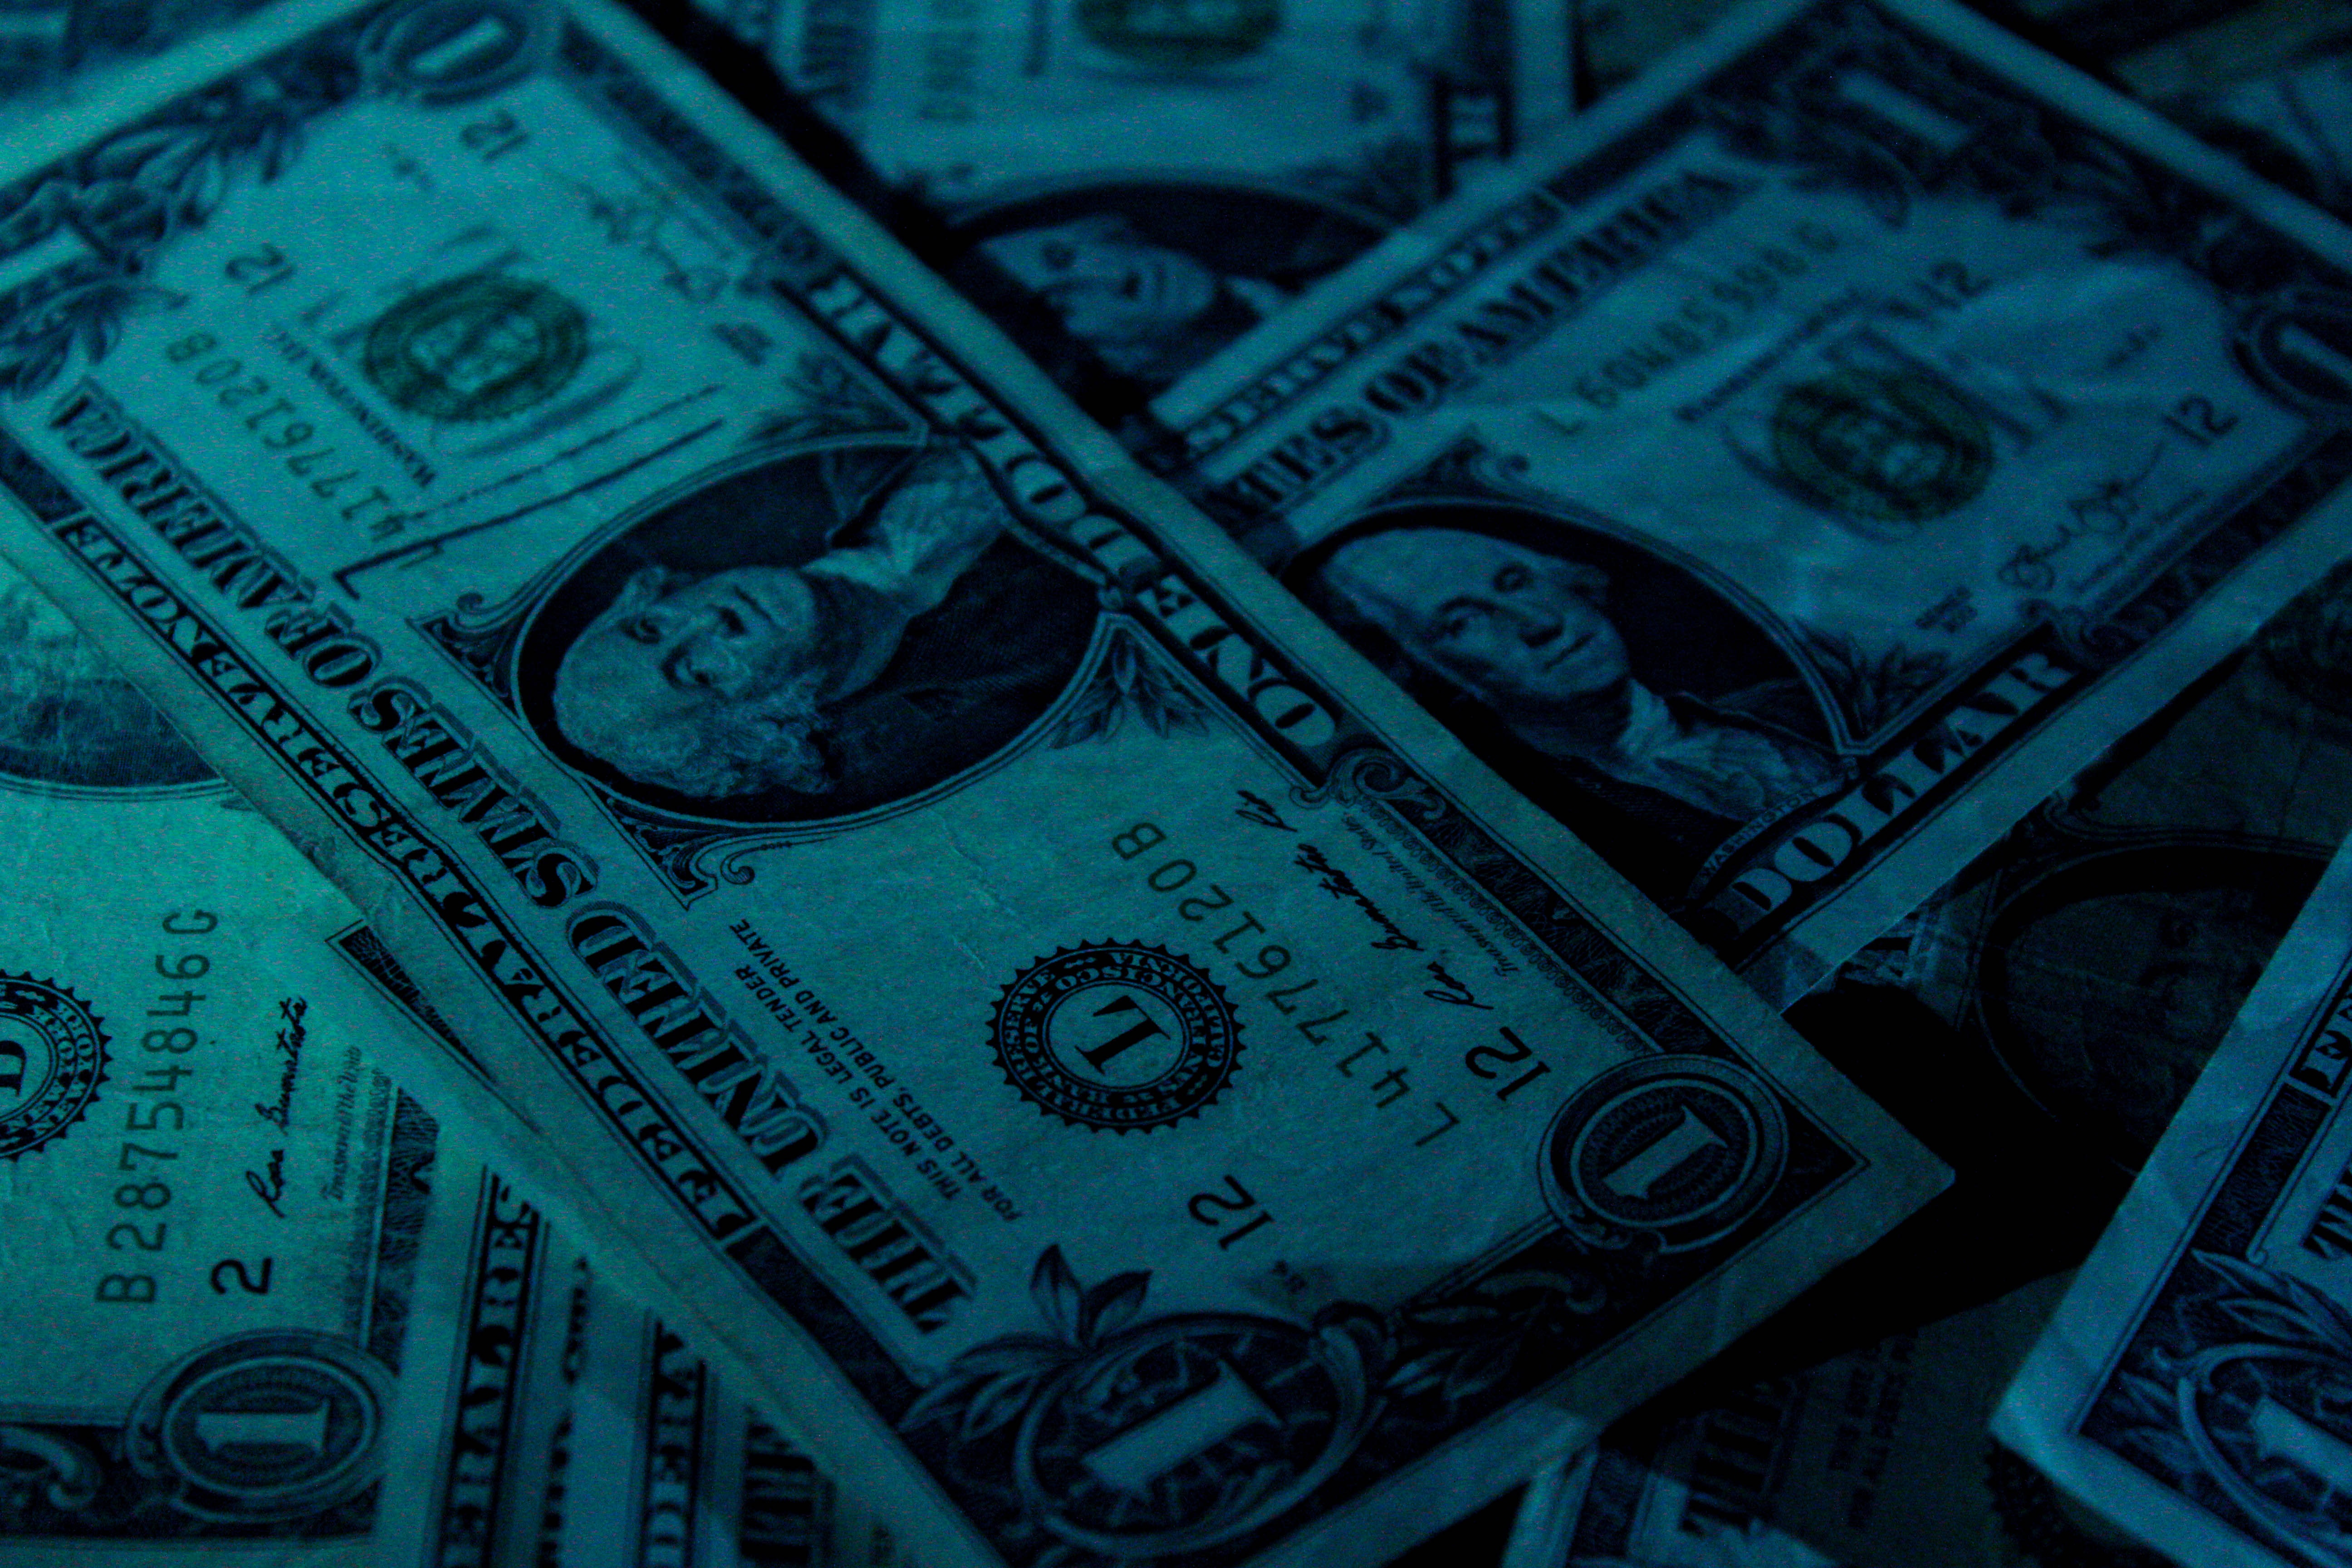 money; Photo by Aidan Bartos on Unsplash